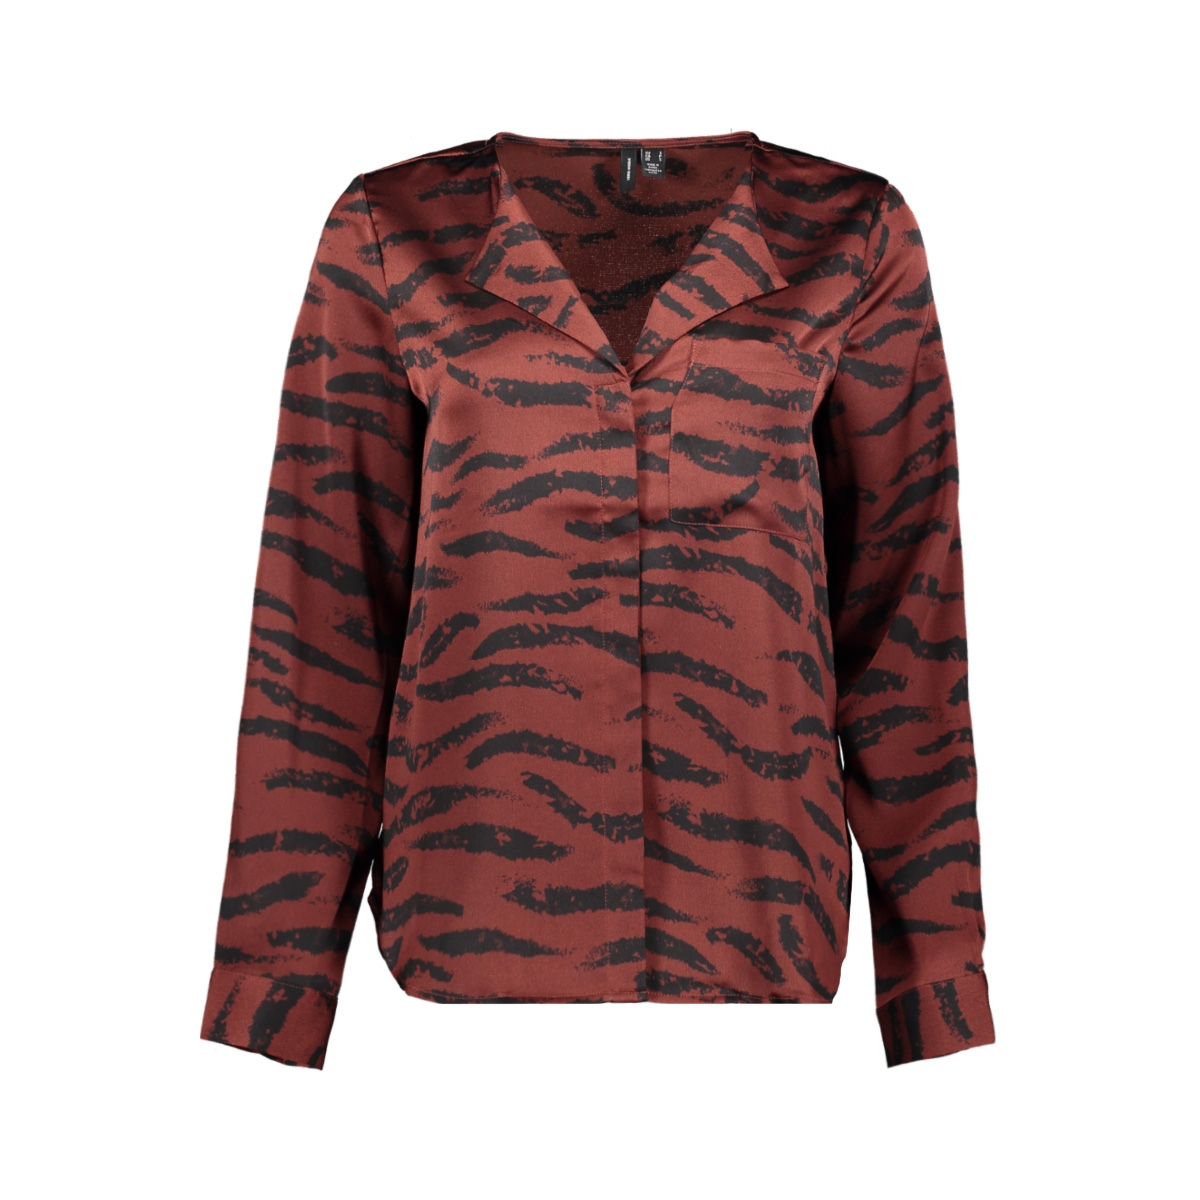 vmrina l/s v-neck shirt exp 10233078 vero moda blouse sable/rina